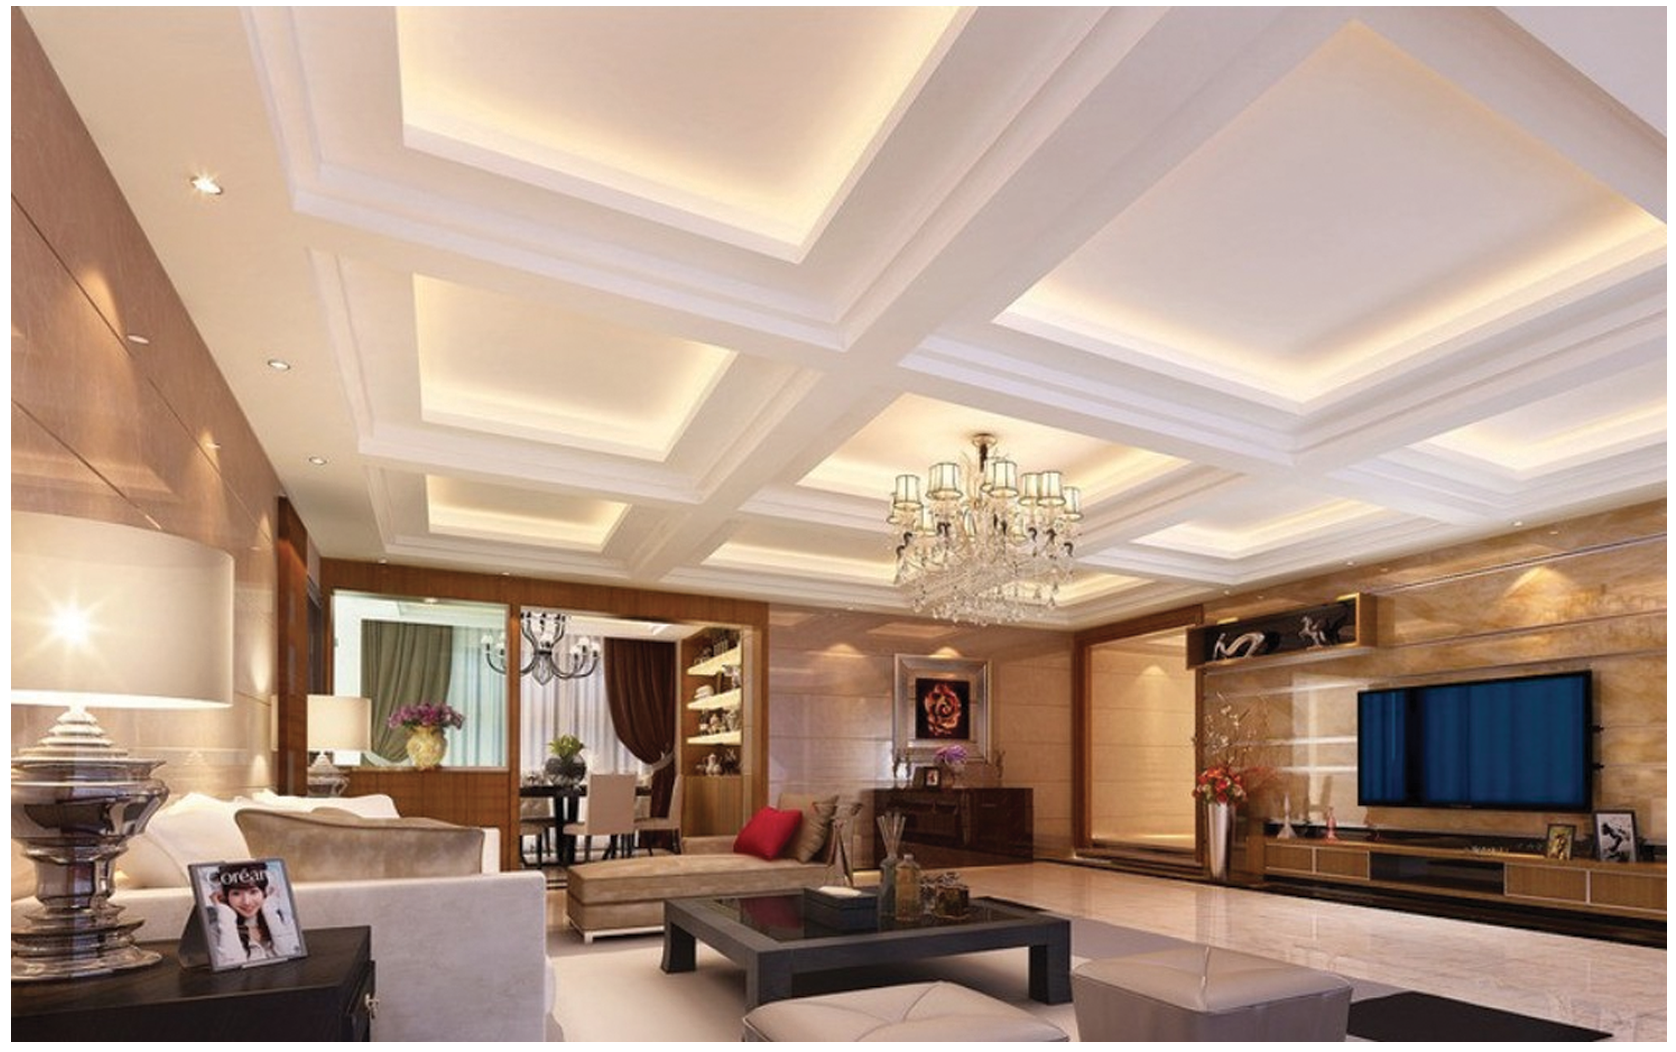 WHITE COFFER CEILING WITH COVE LIGHTING